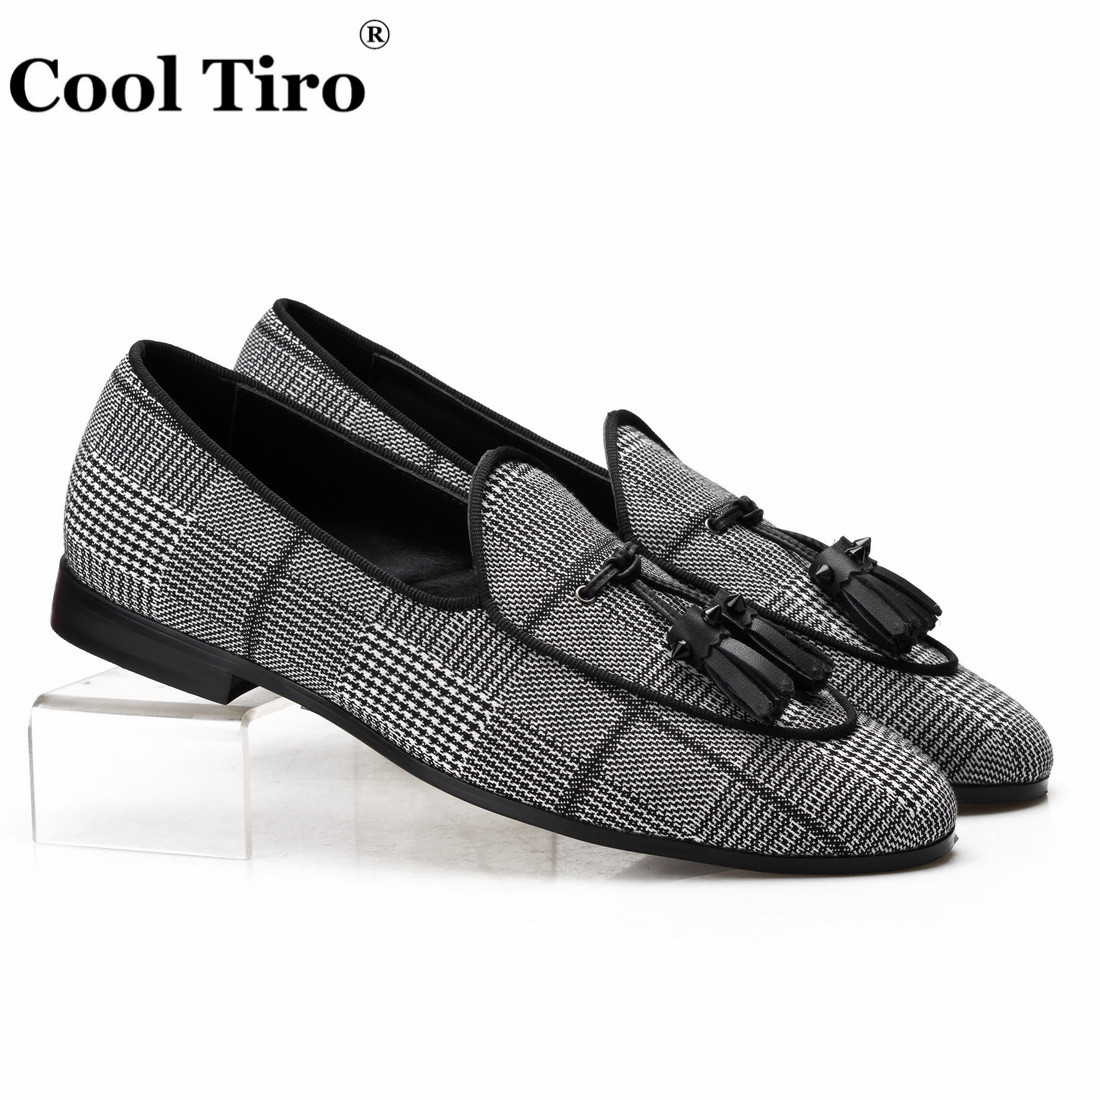 Cool Tiro Gingham Canvas Belgian Loafers Men s Smoking Slippers Moccasins Dress Shoes With Tassels Genuine